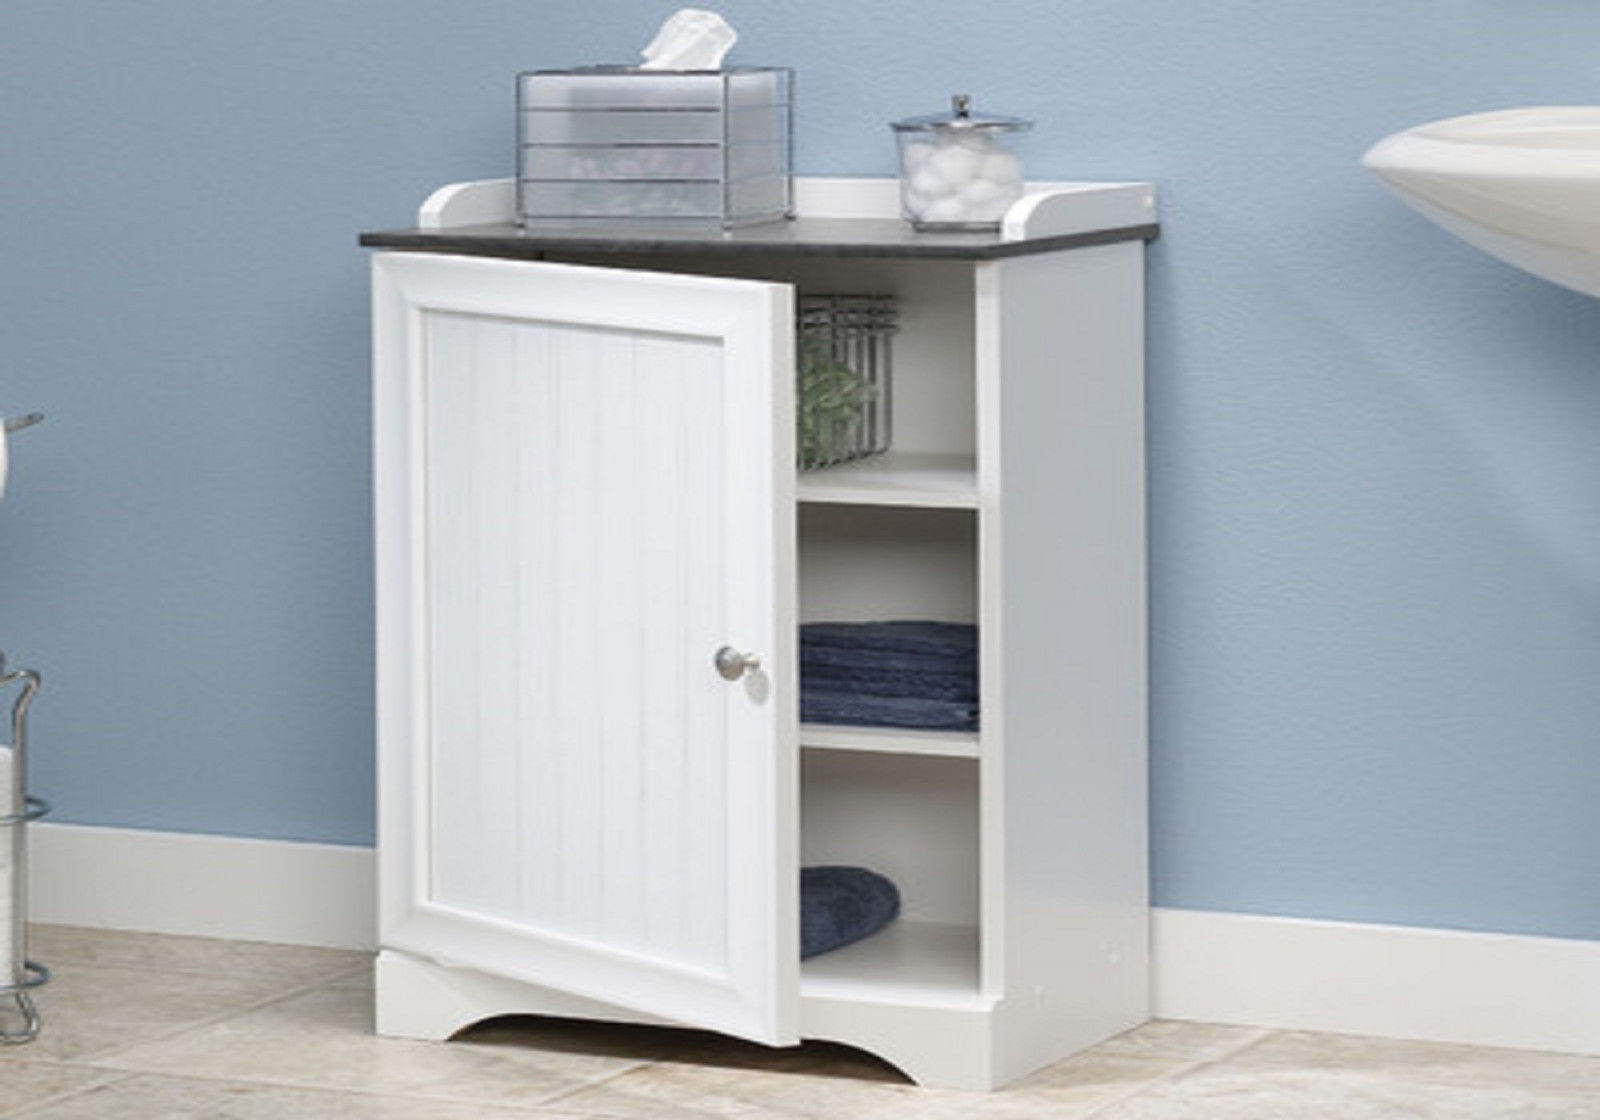 New Small White Bathroom Bath Ideas Floor Towel Storage Cabinets Decor Furniture image 1